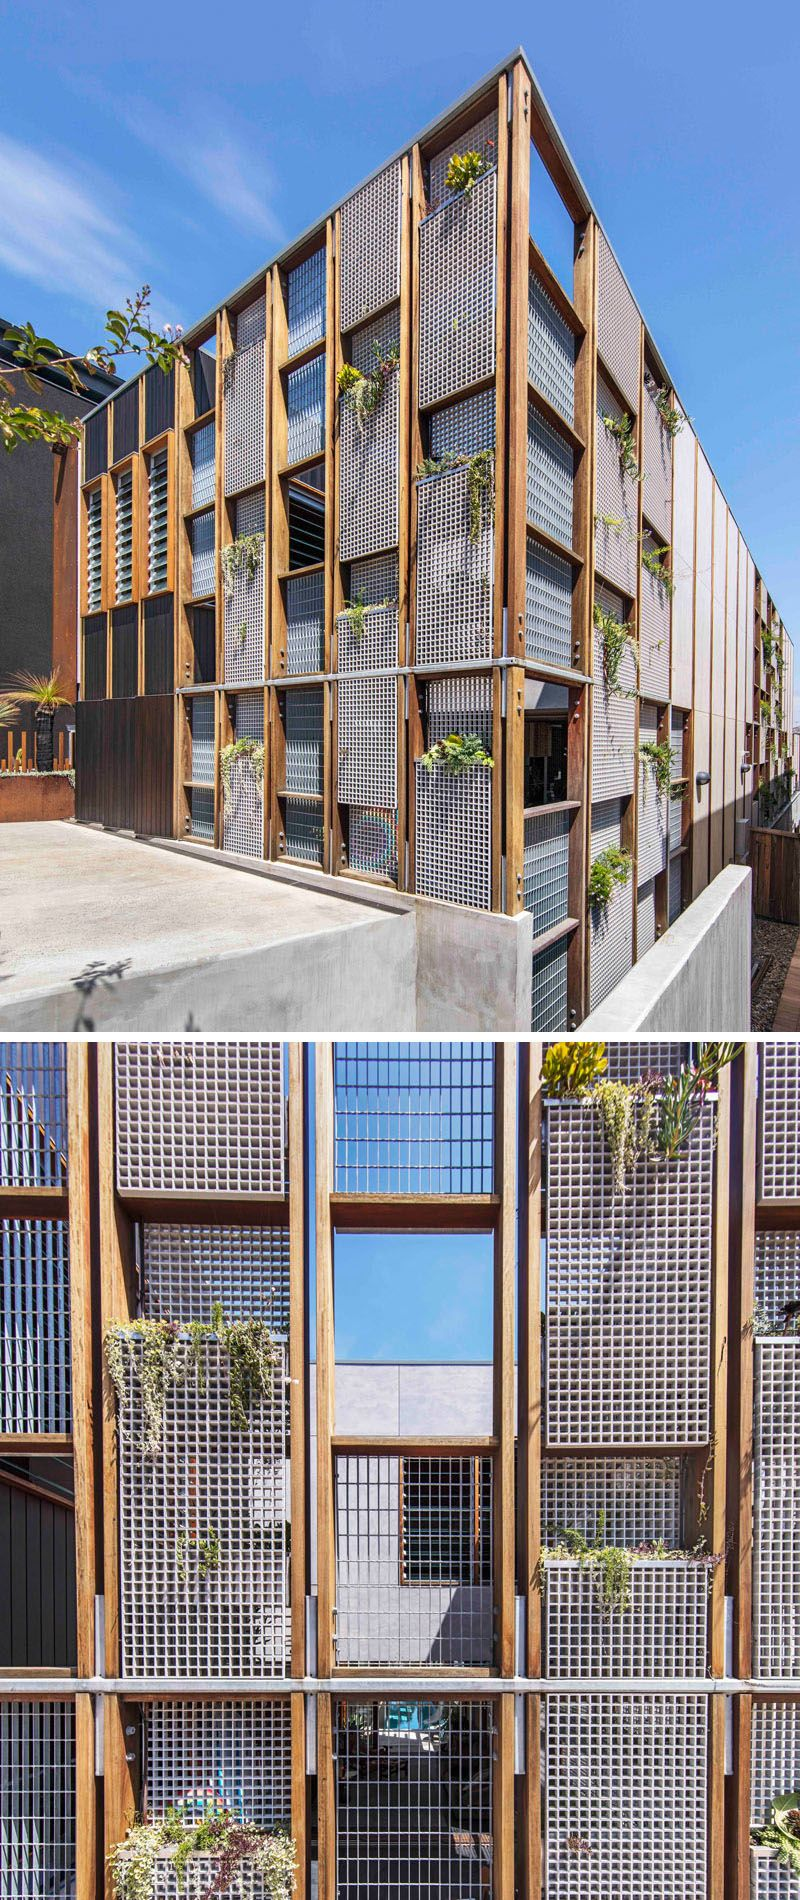 The Facade Of This Modern House Is Made Up Of A Wood Grid With Windows And